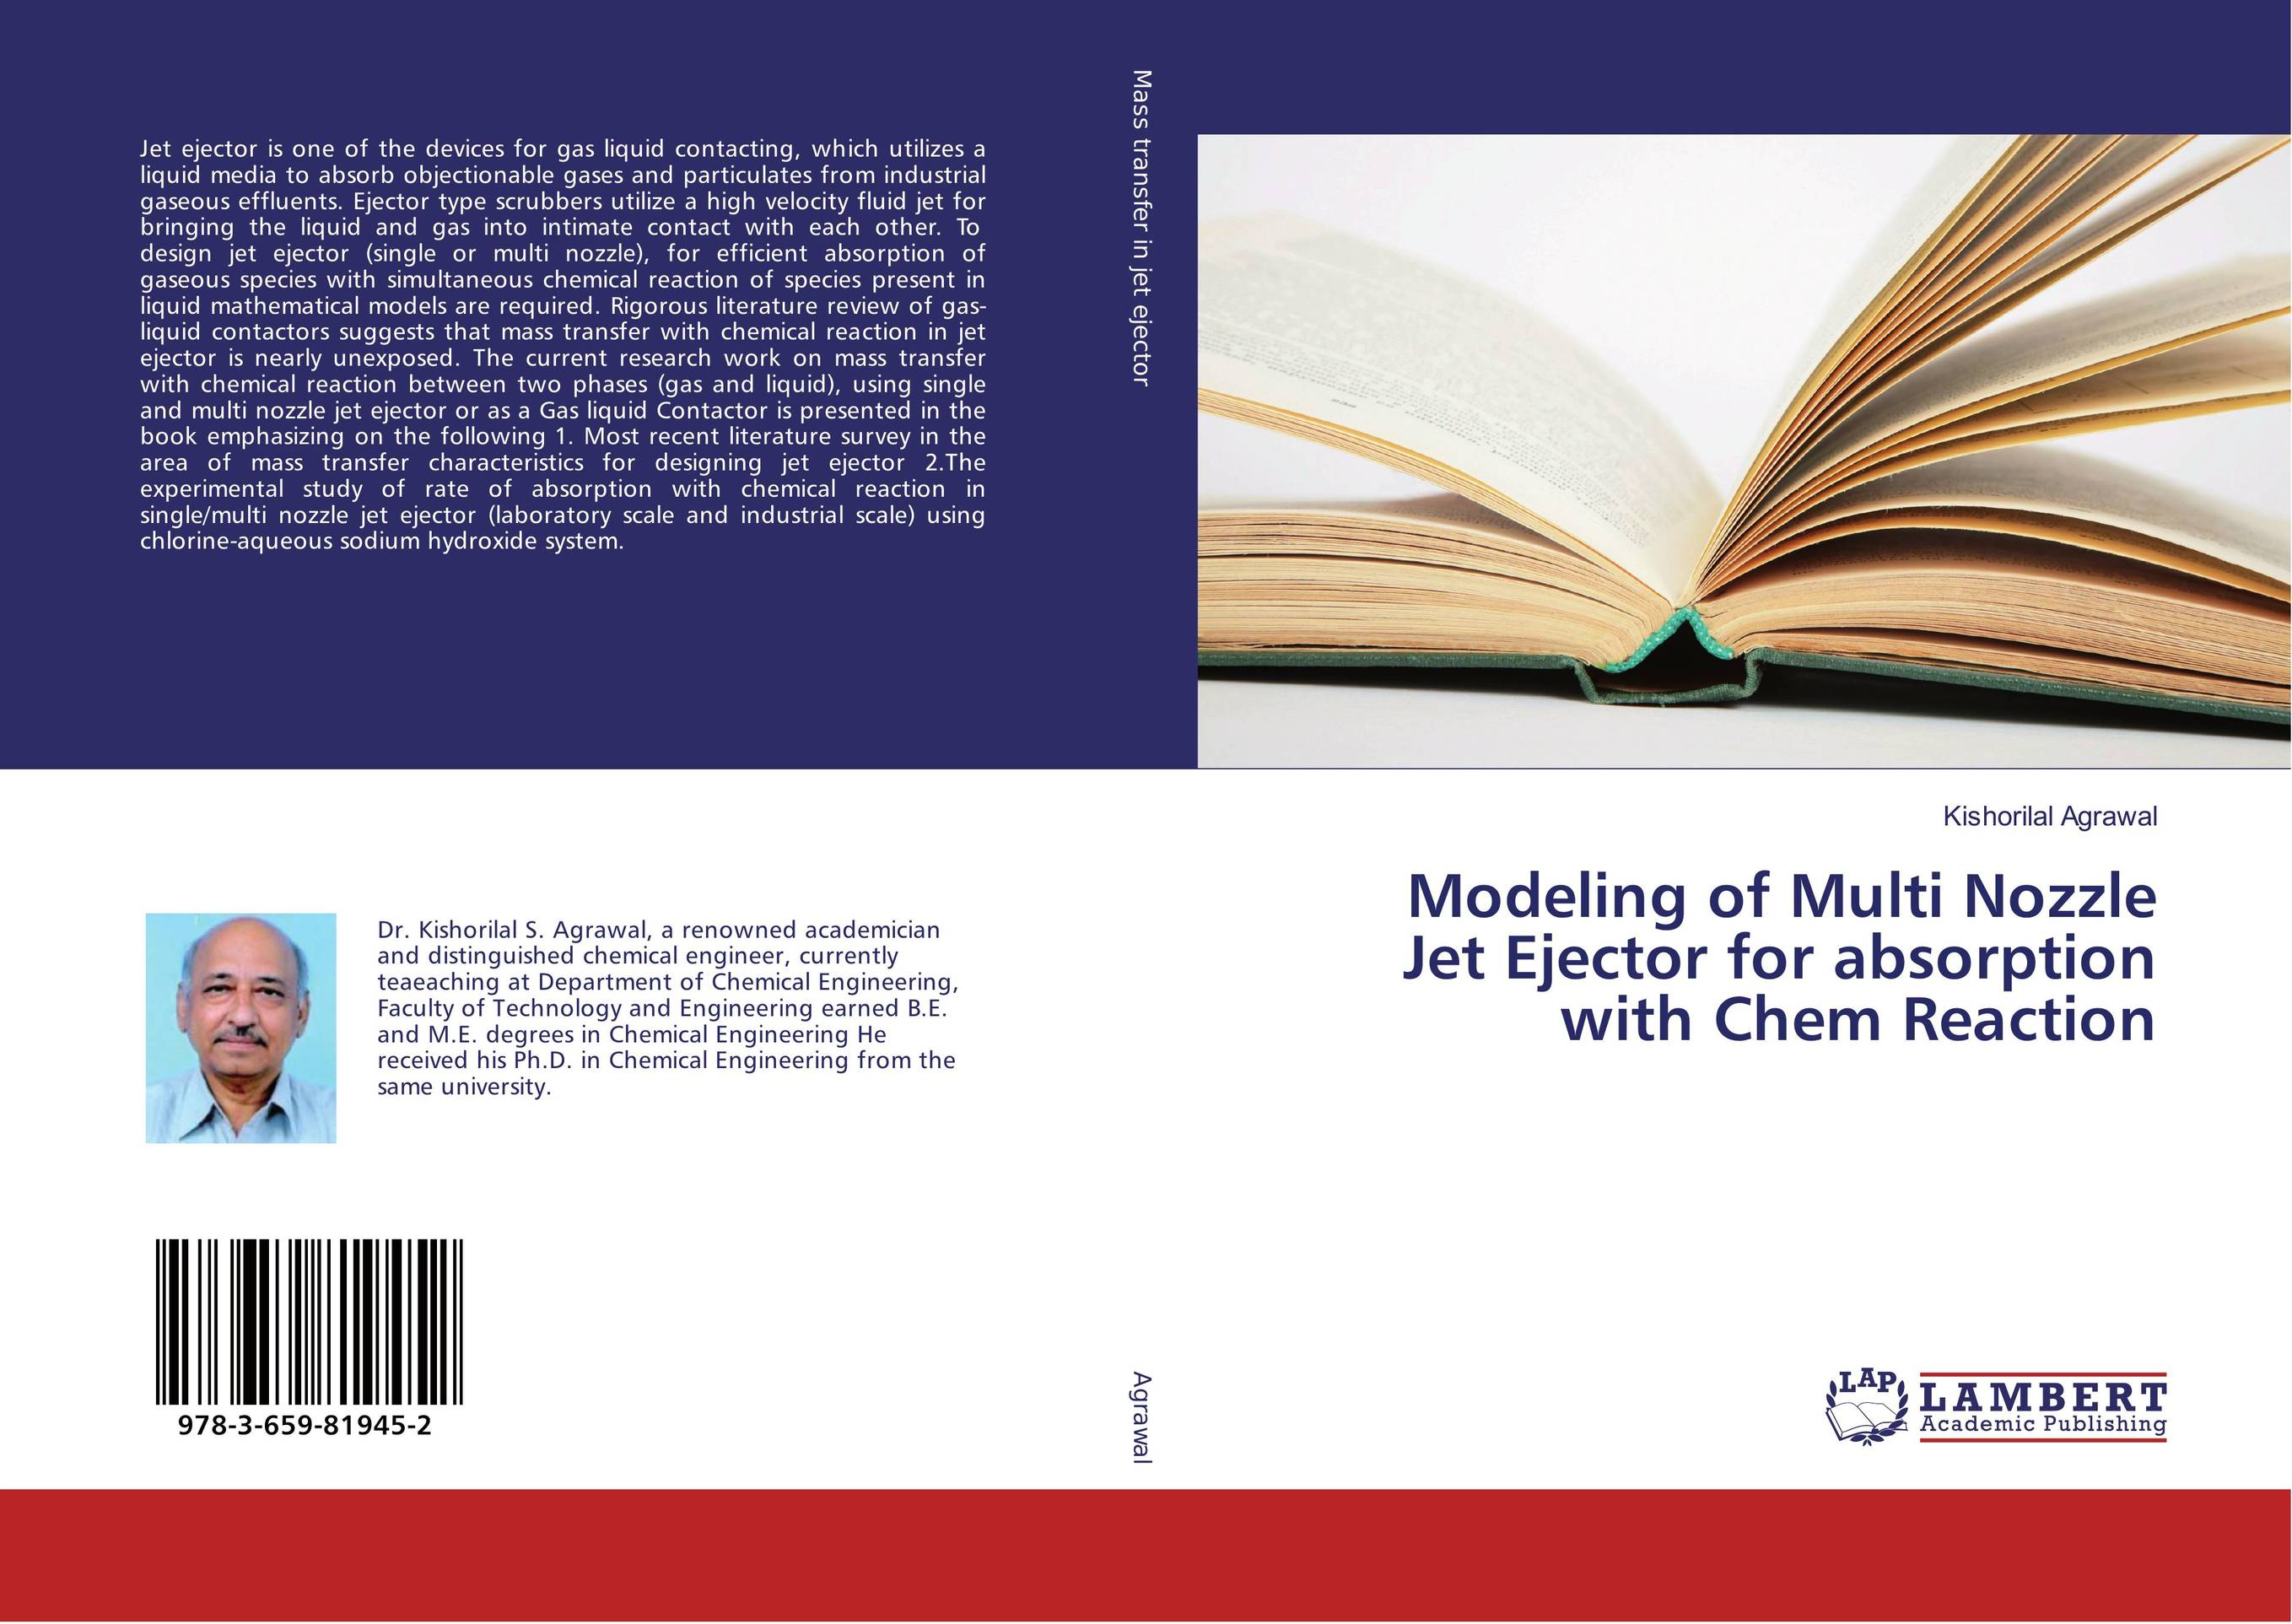 Modeling of Multi Nozzle Jet Ejector for absorption with Chem Reaction